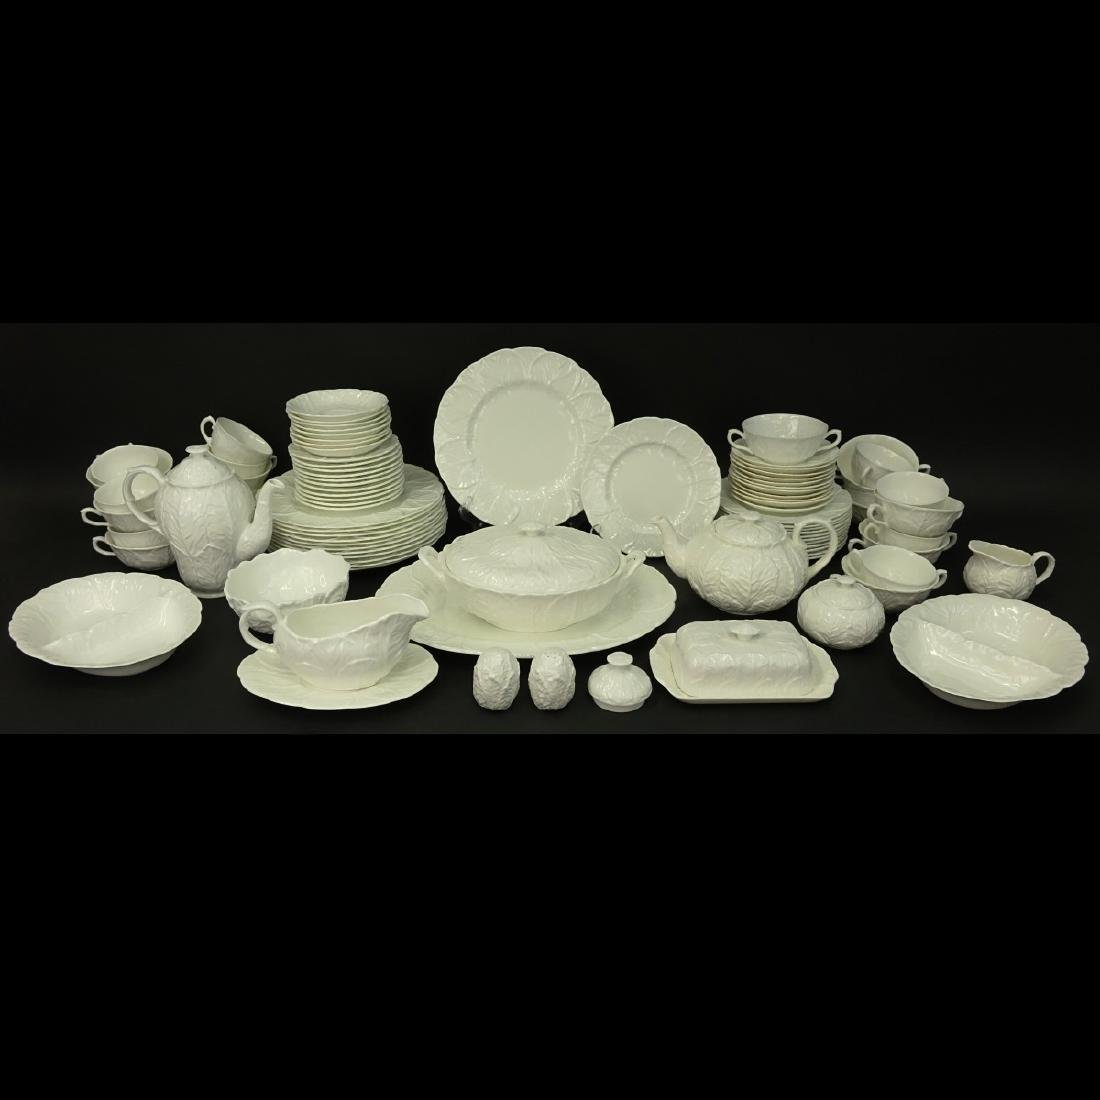 92 Piece Coalport White Countryware Dinner Service